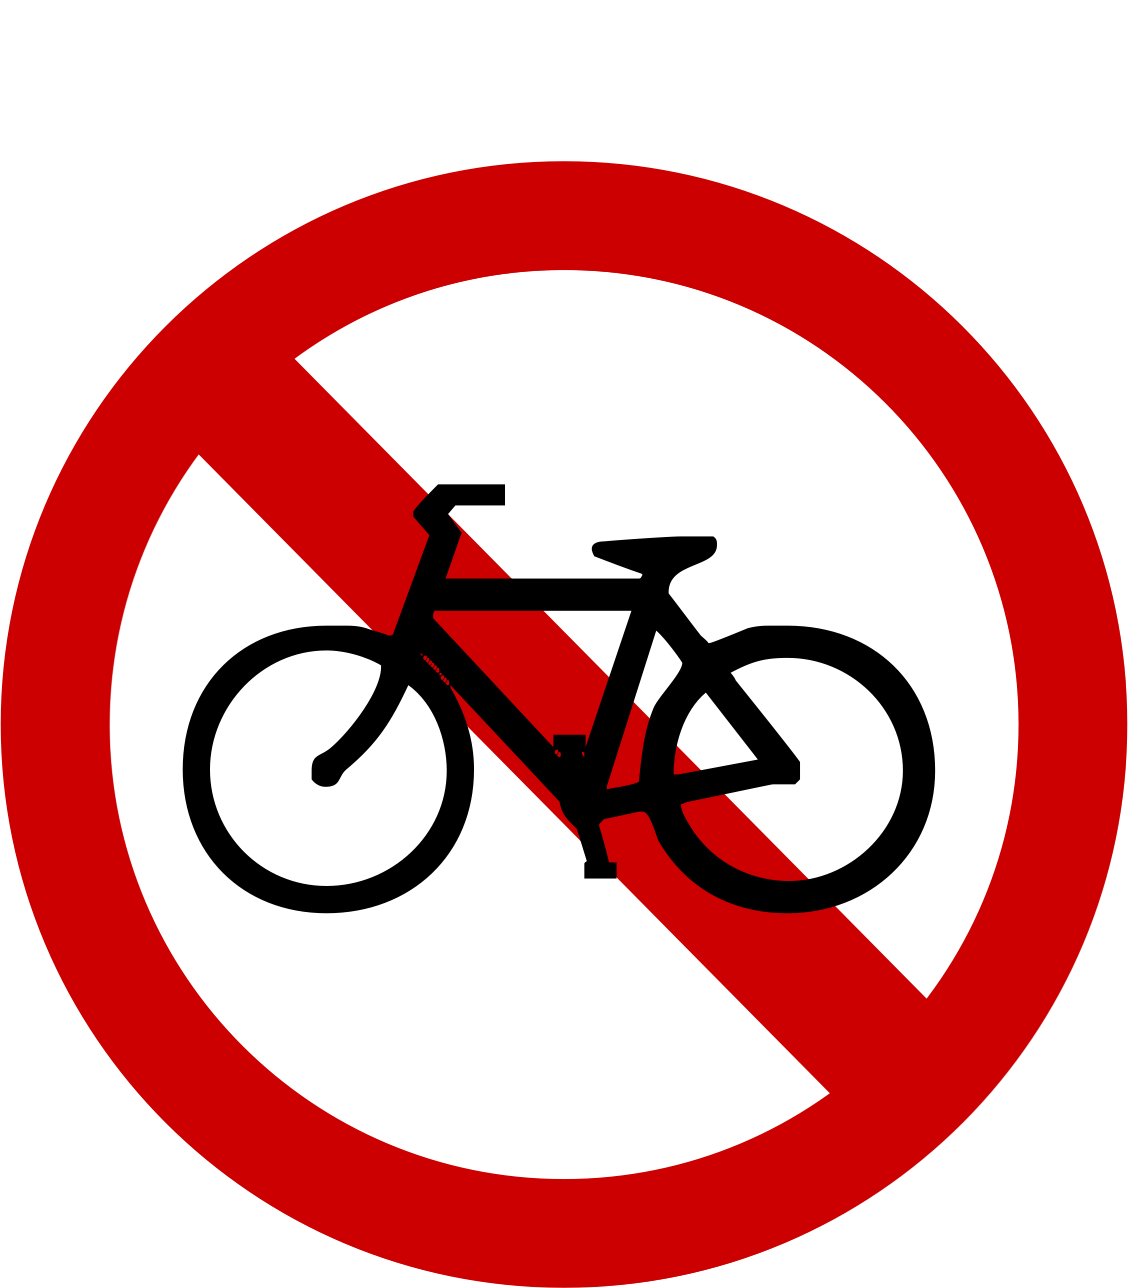 Datei:Indonesia New Road Sign Pro 2c3.png